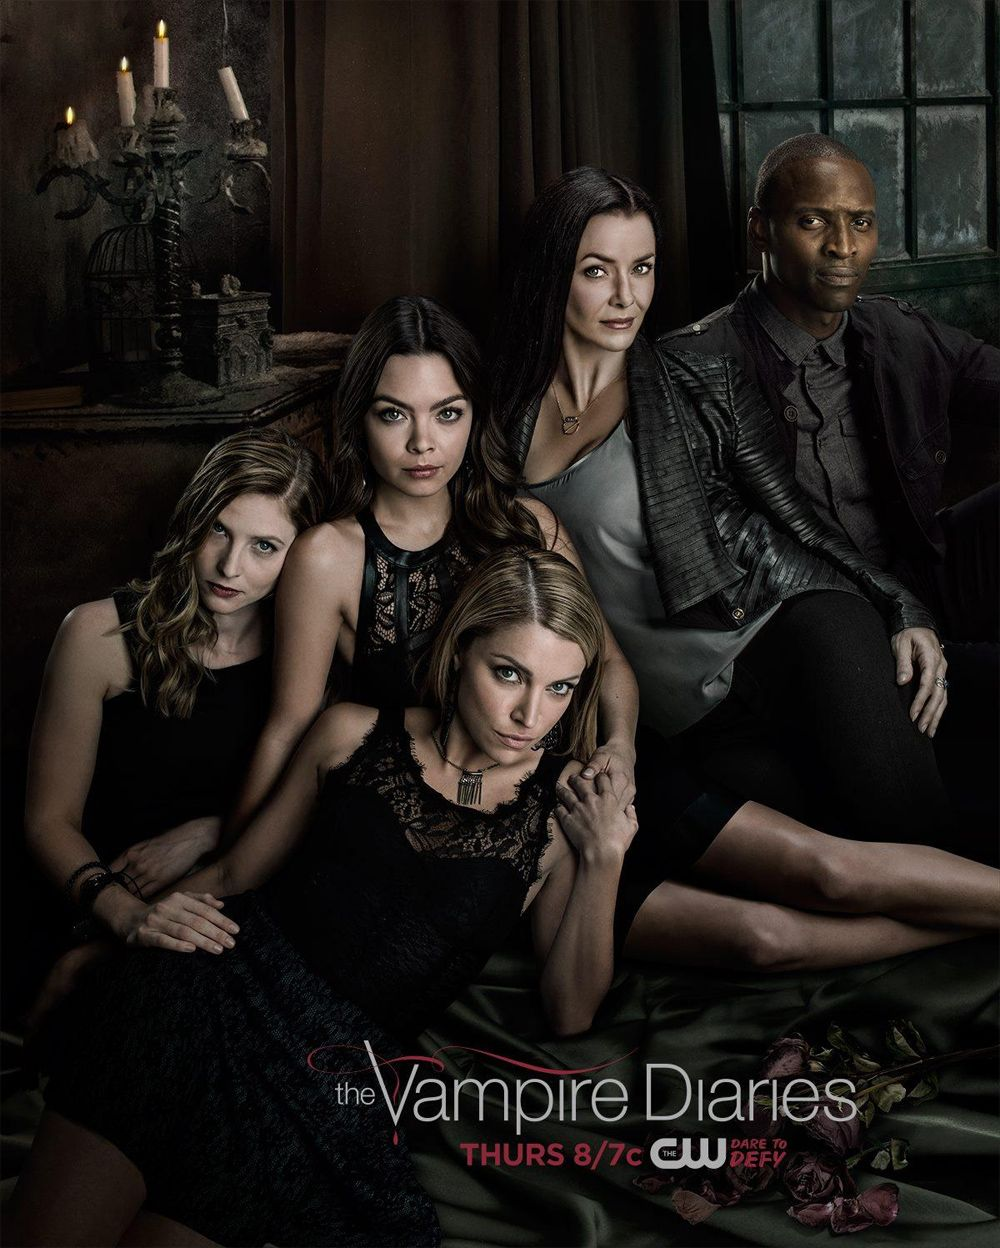 The Vampire Diaries Season 7 Promotional Poster With Images